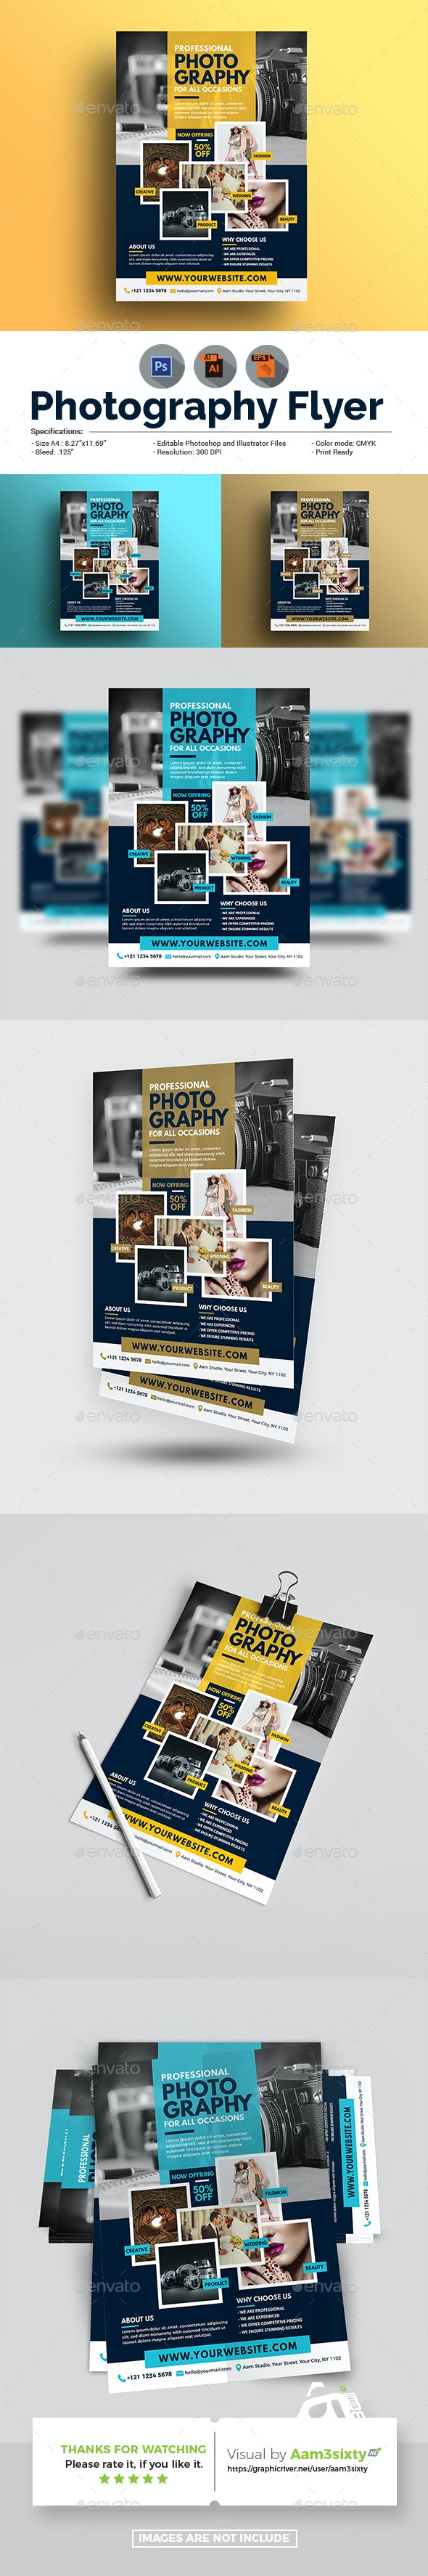 Photography Flyer - Corporate Flyers